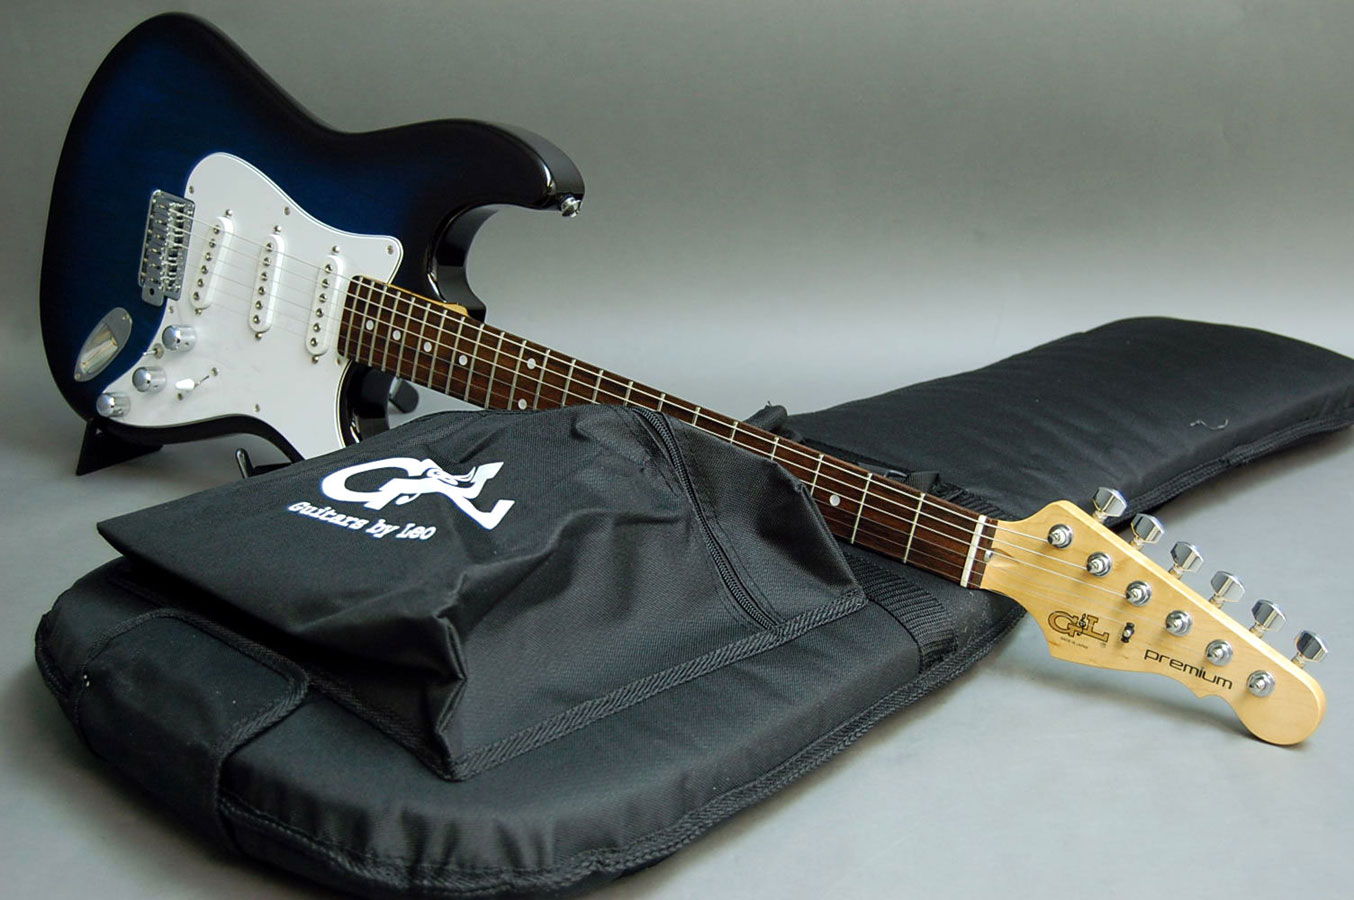 S-G & L PREMIUM 500 (BST/R) (made in Japan)